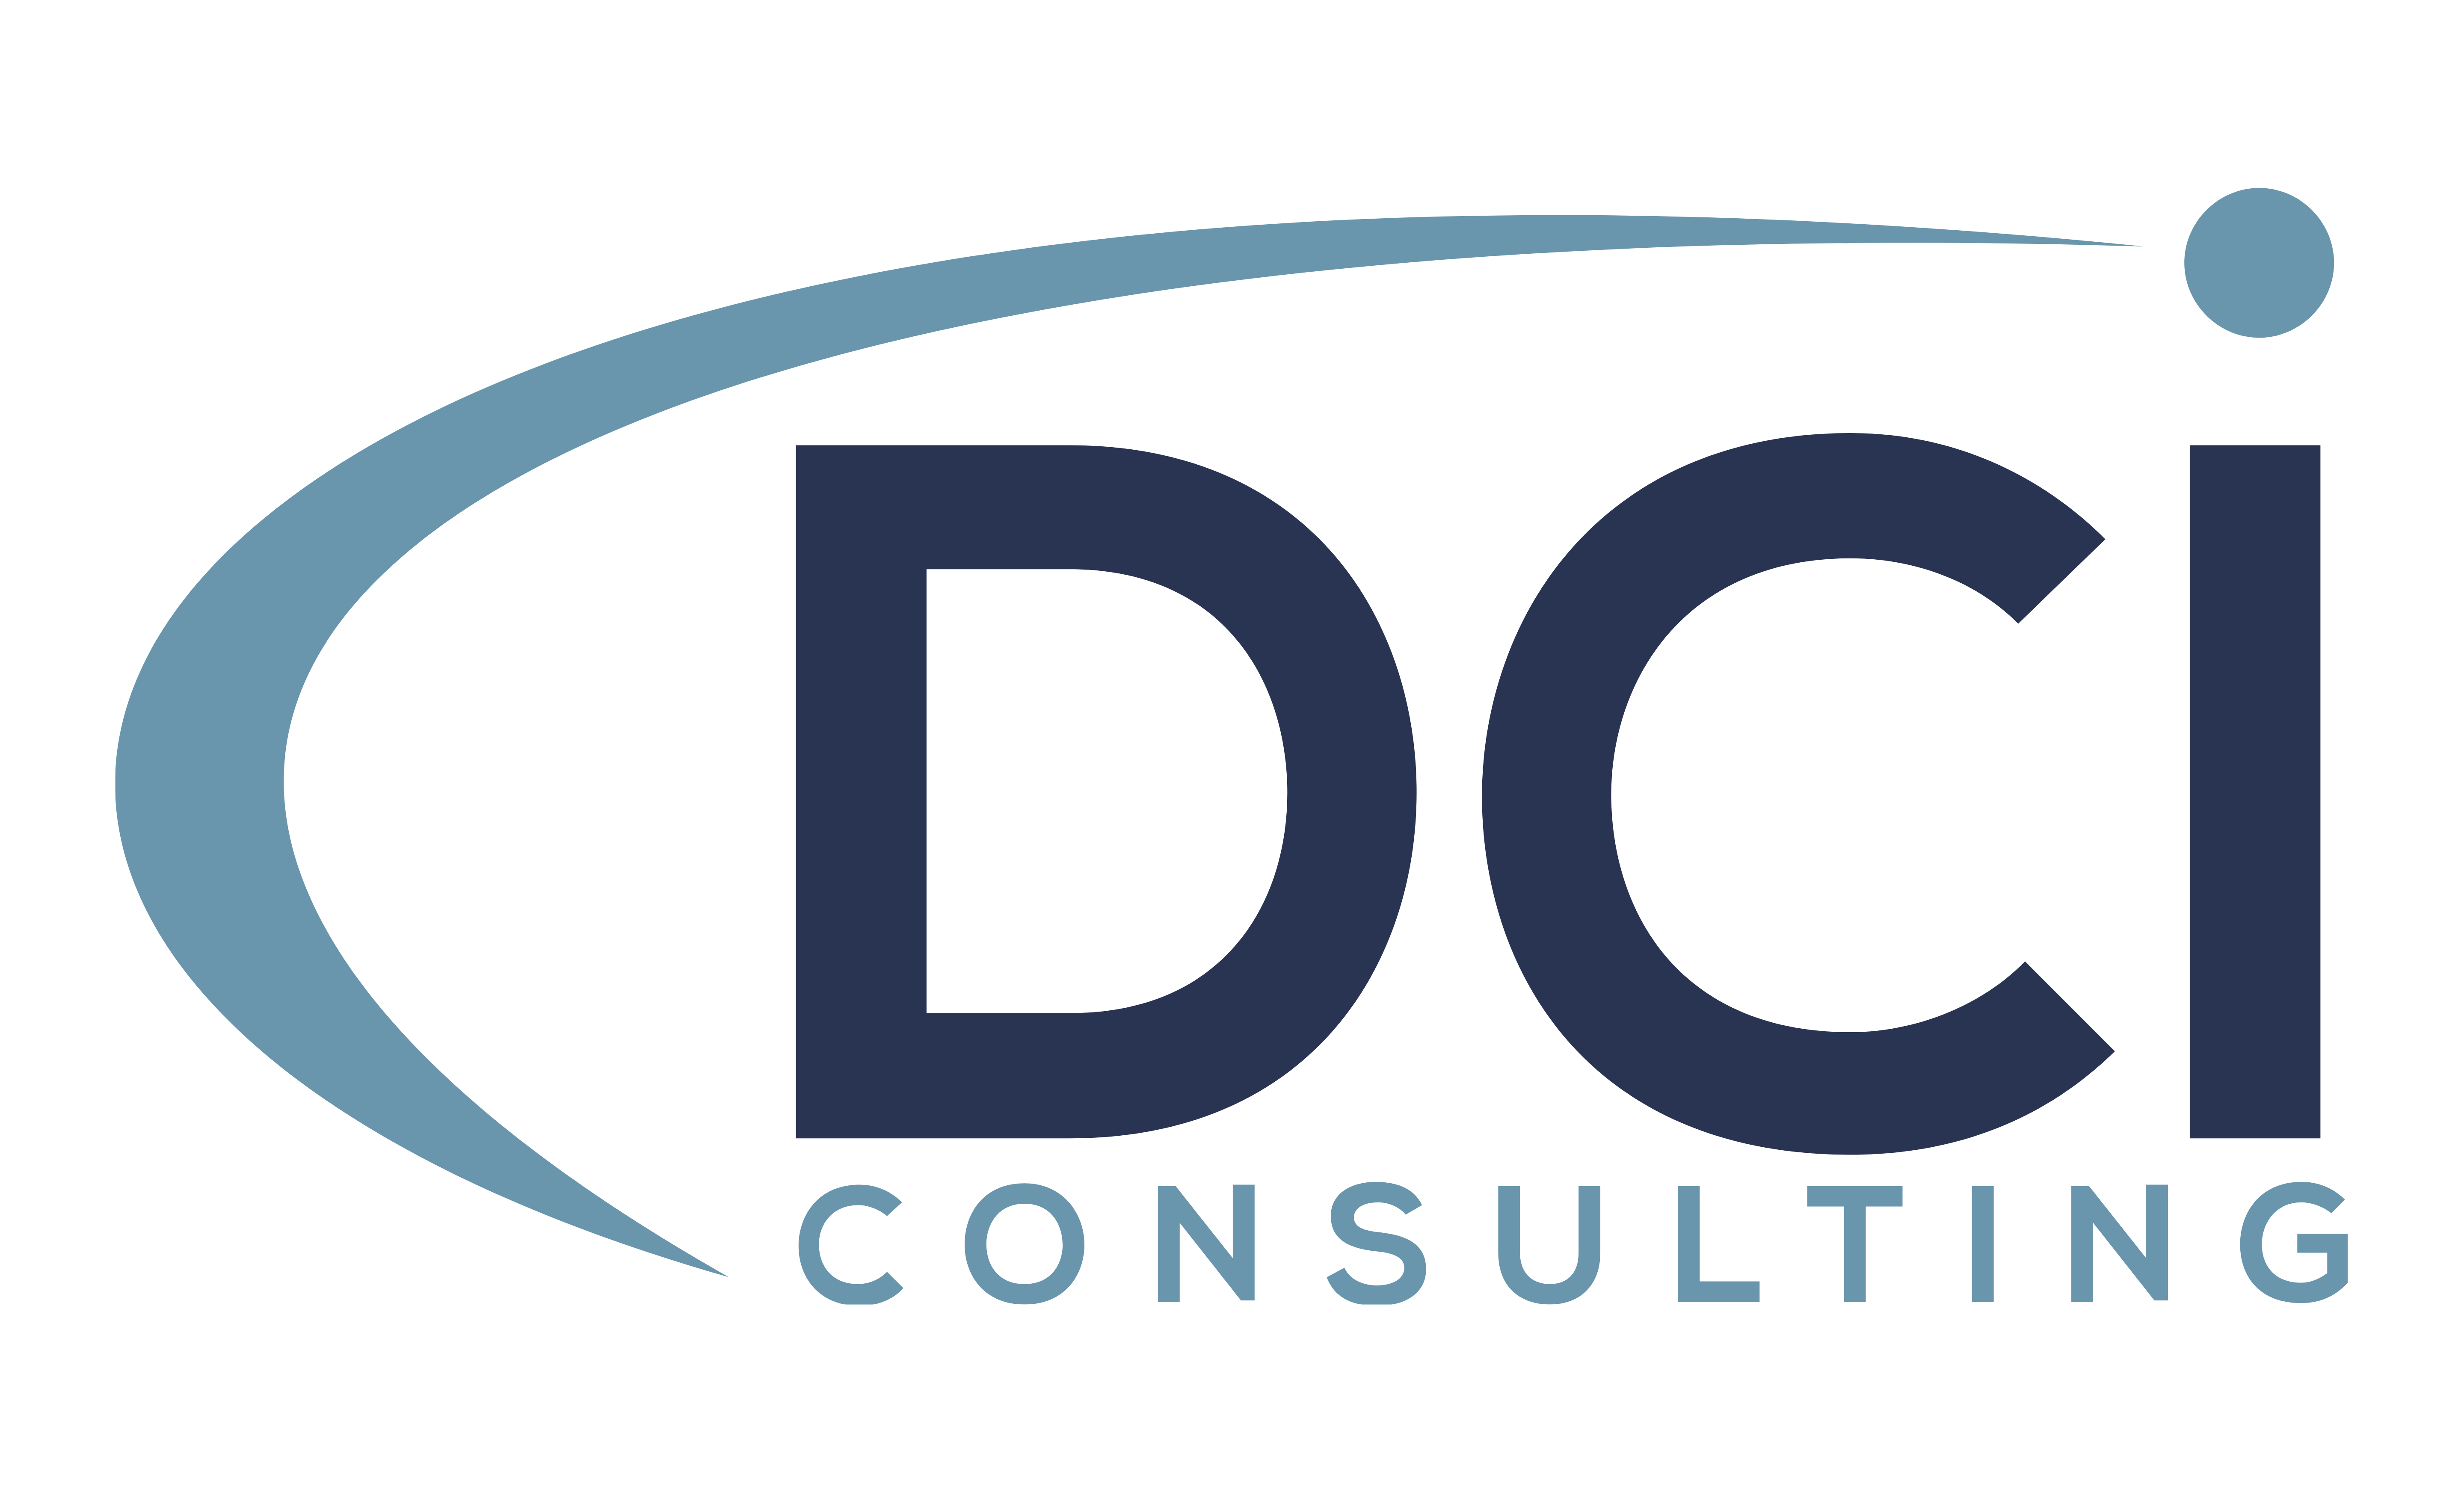 Full Service Consulting